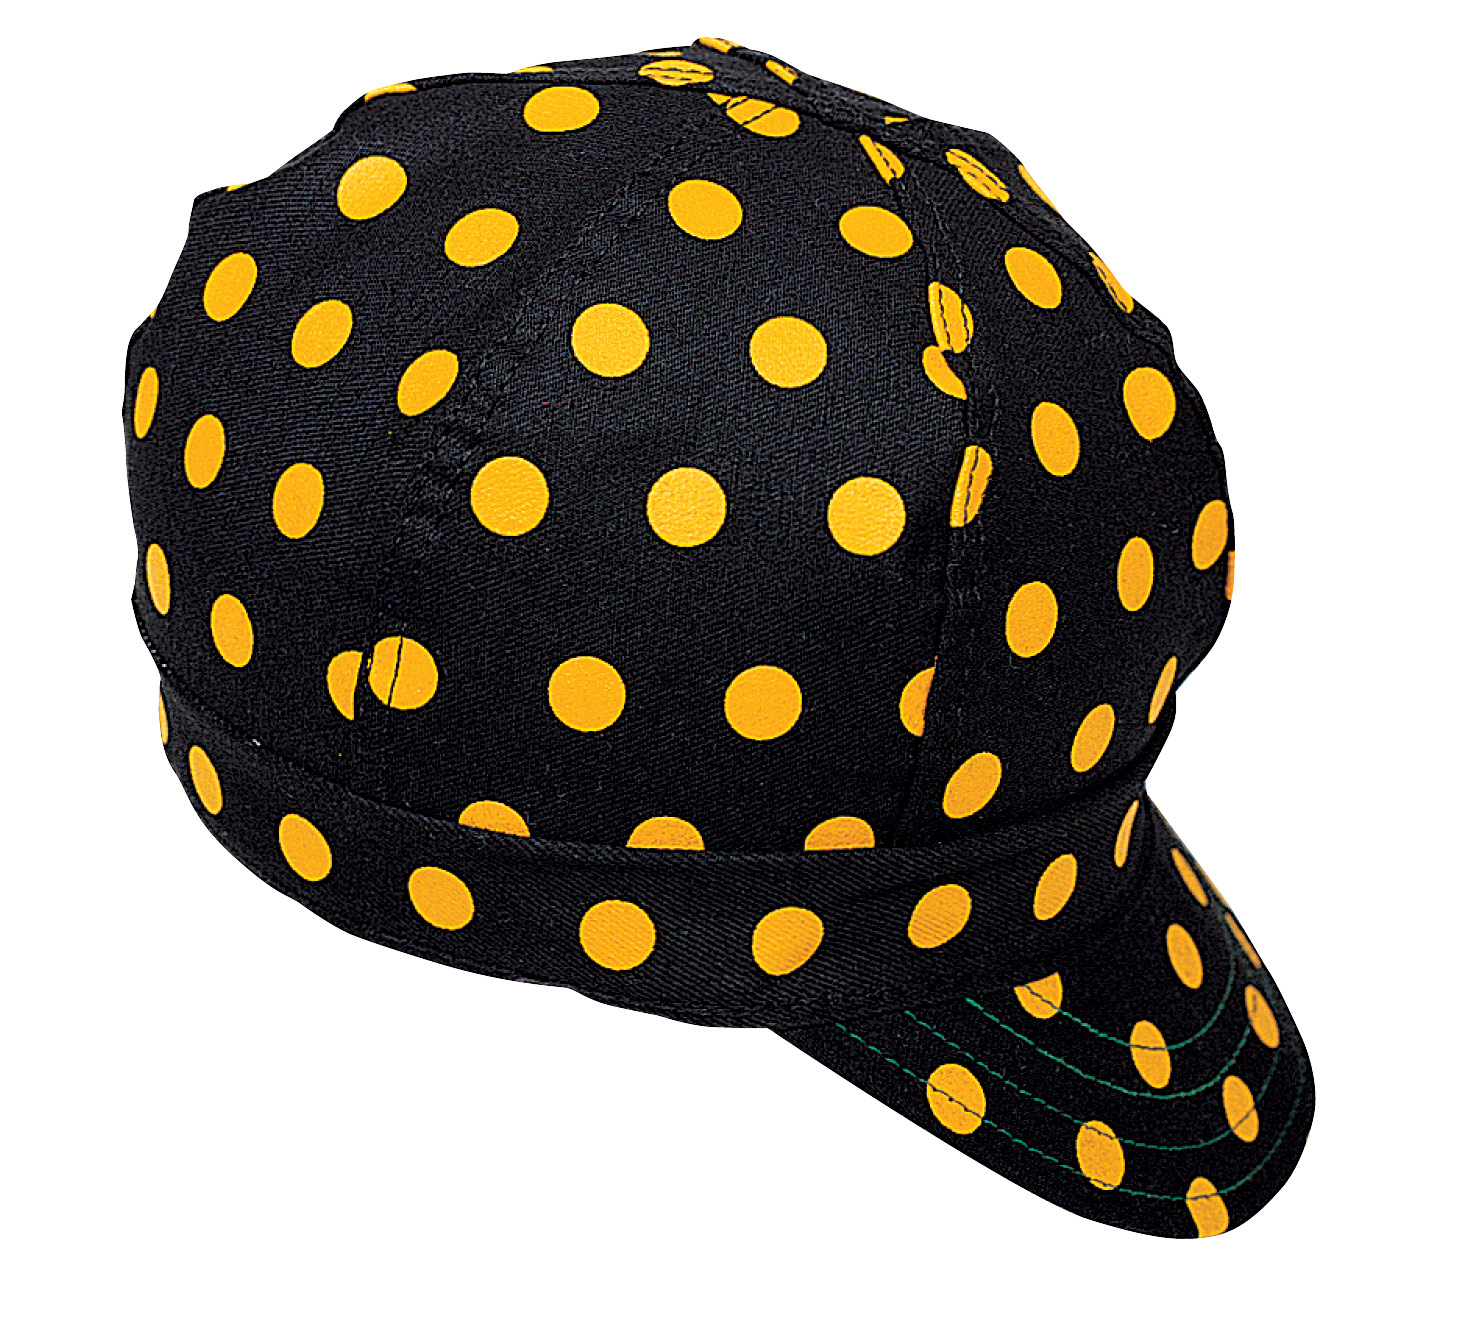 M7324-0-0, Kromer Welder Cap, Cotton, Length 5 in, Width 6 in- 1size, Black/Yellow Dot, Mutual Industries